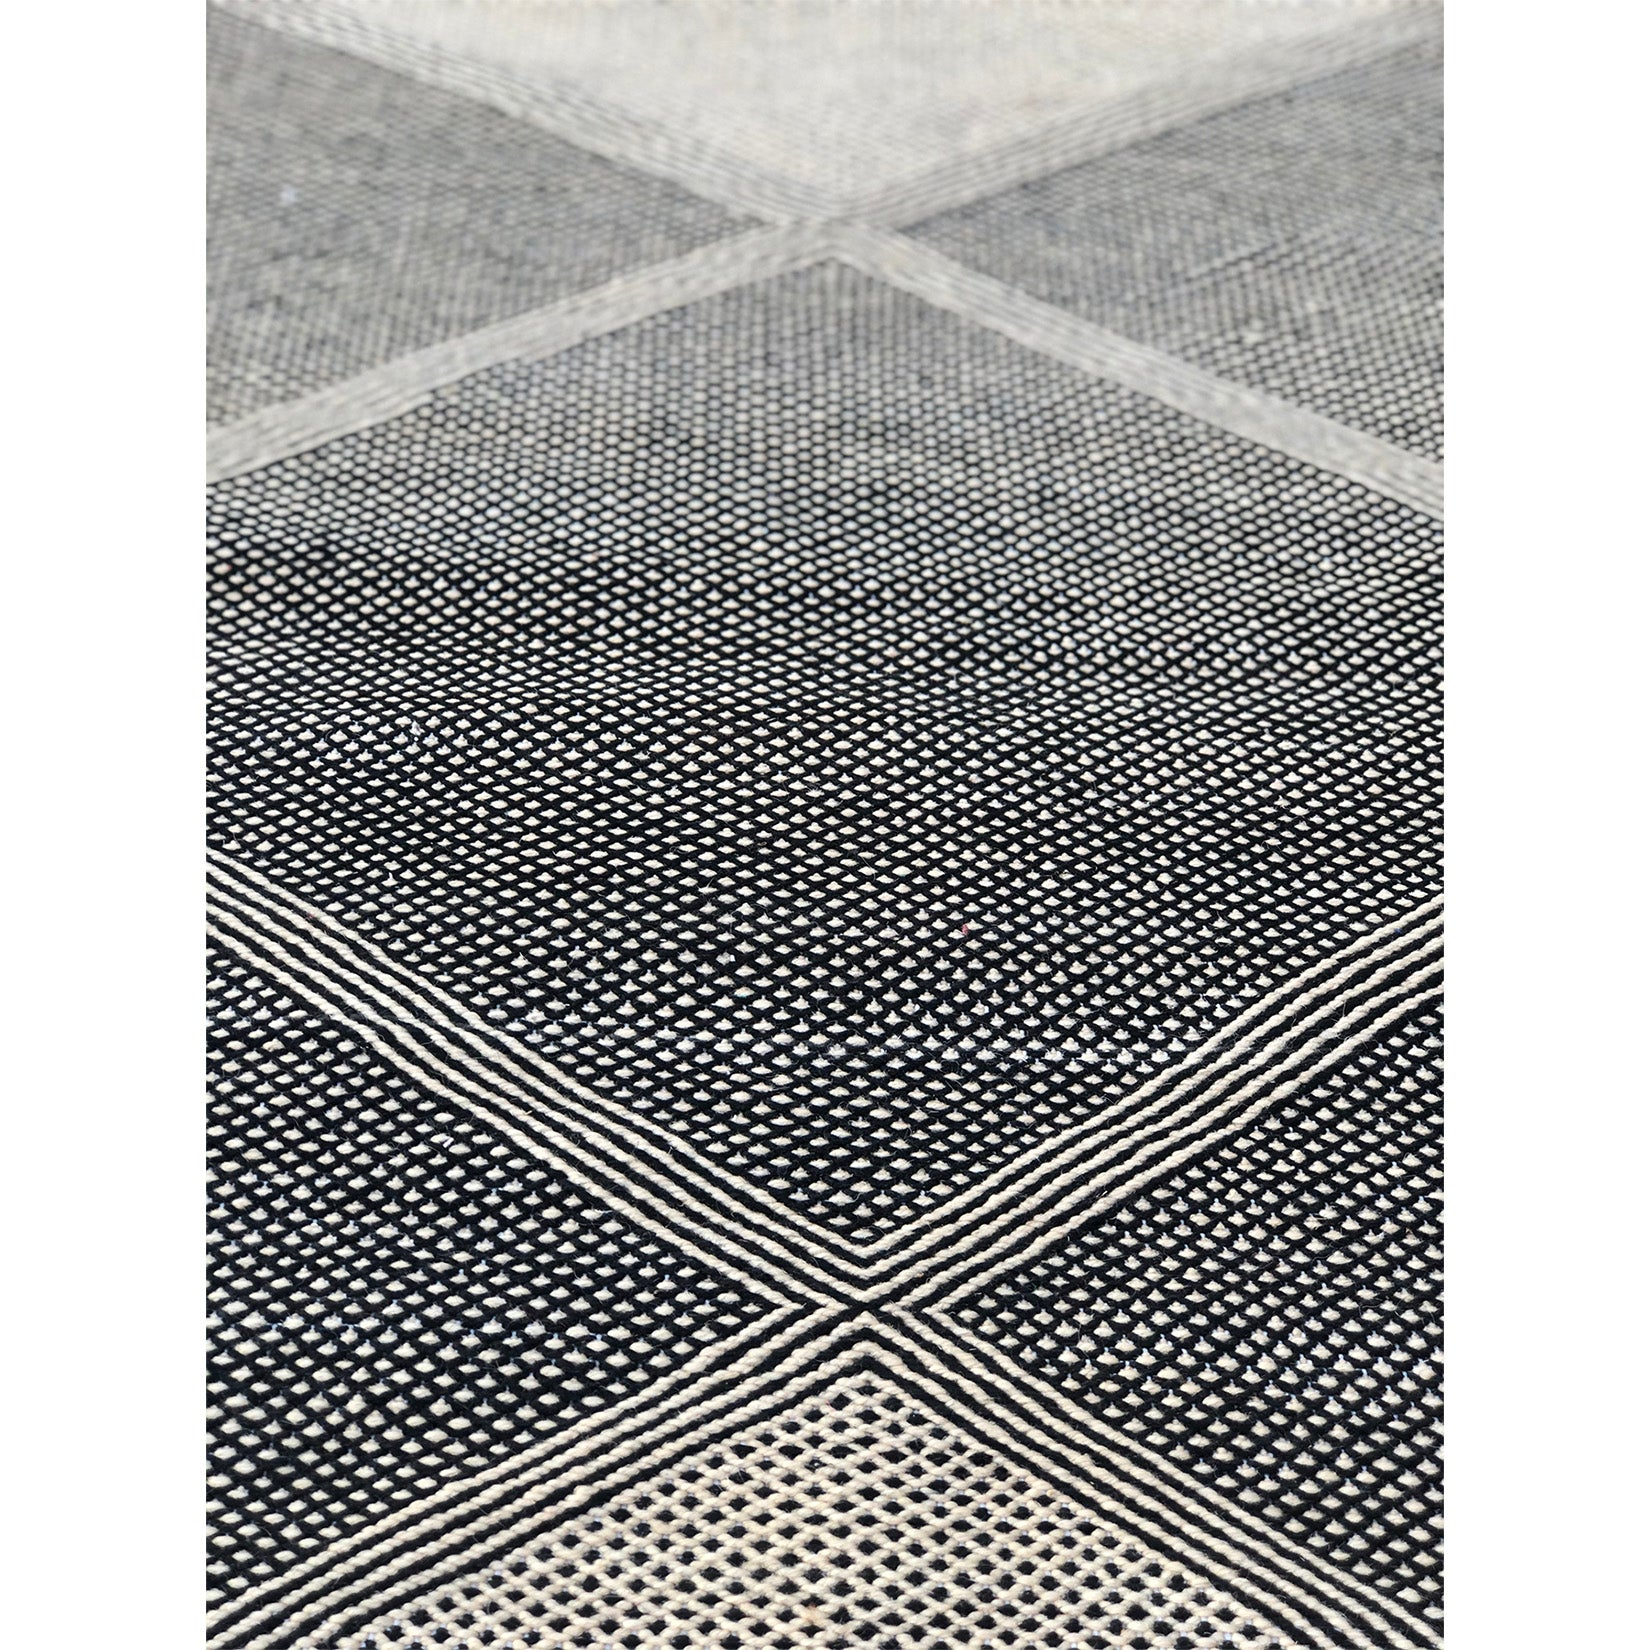 SOHA - Small Geometric Moroccan throw - Kantara | Moroccan Rugs